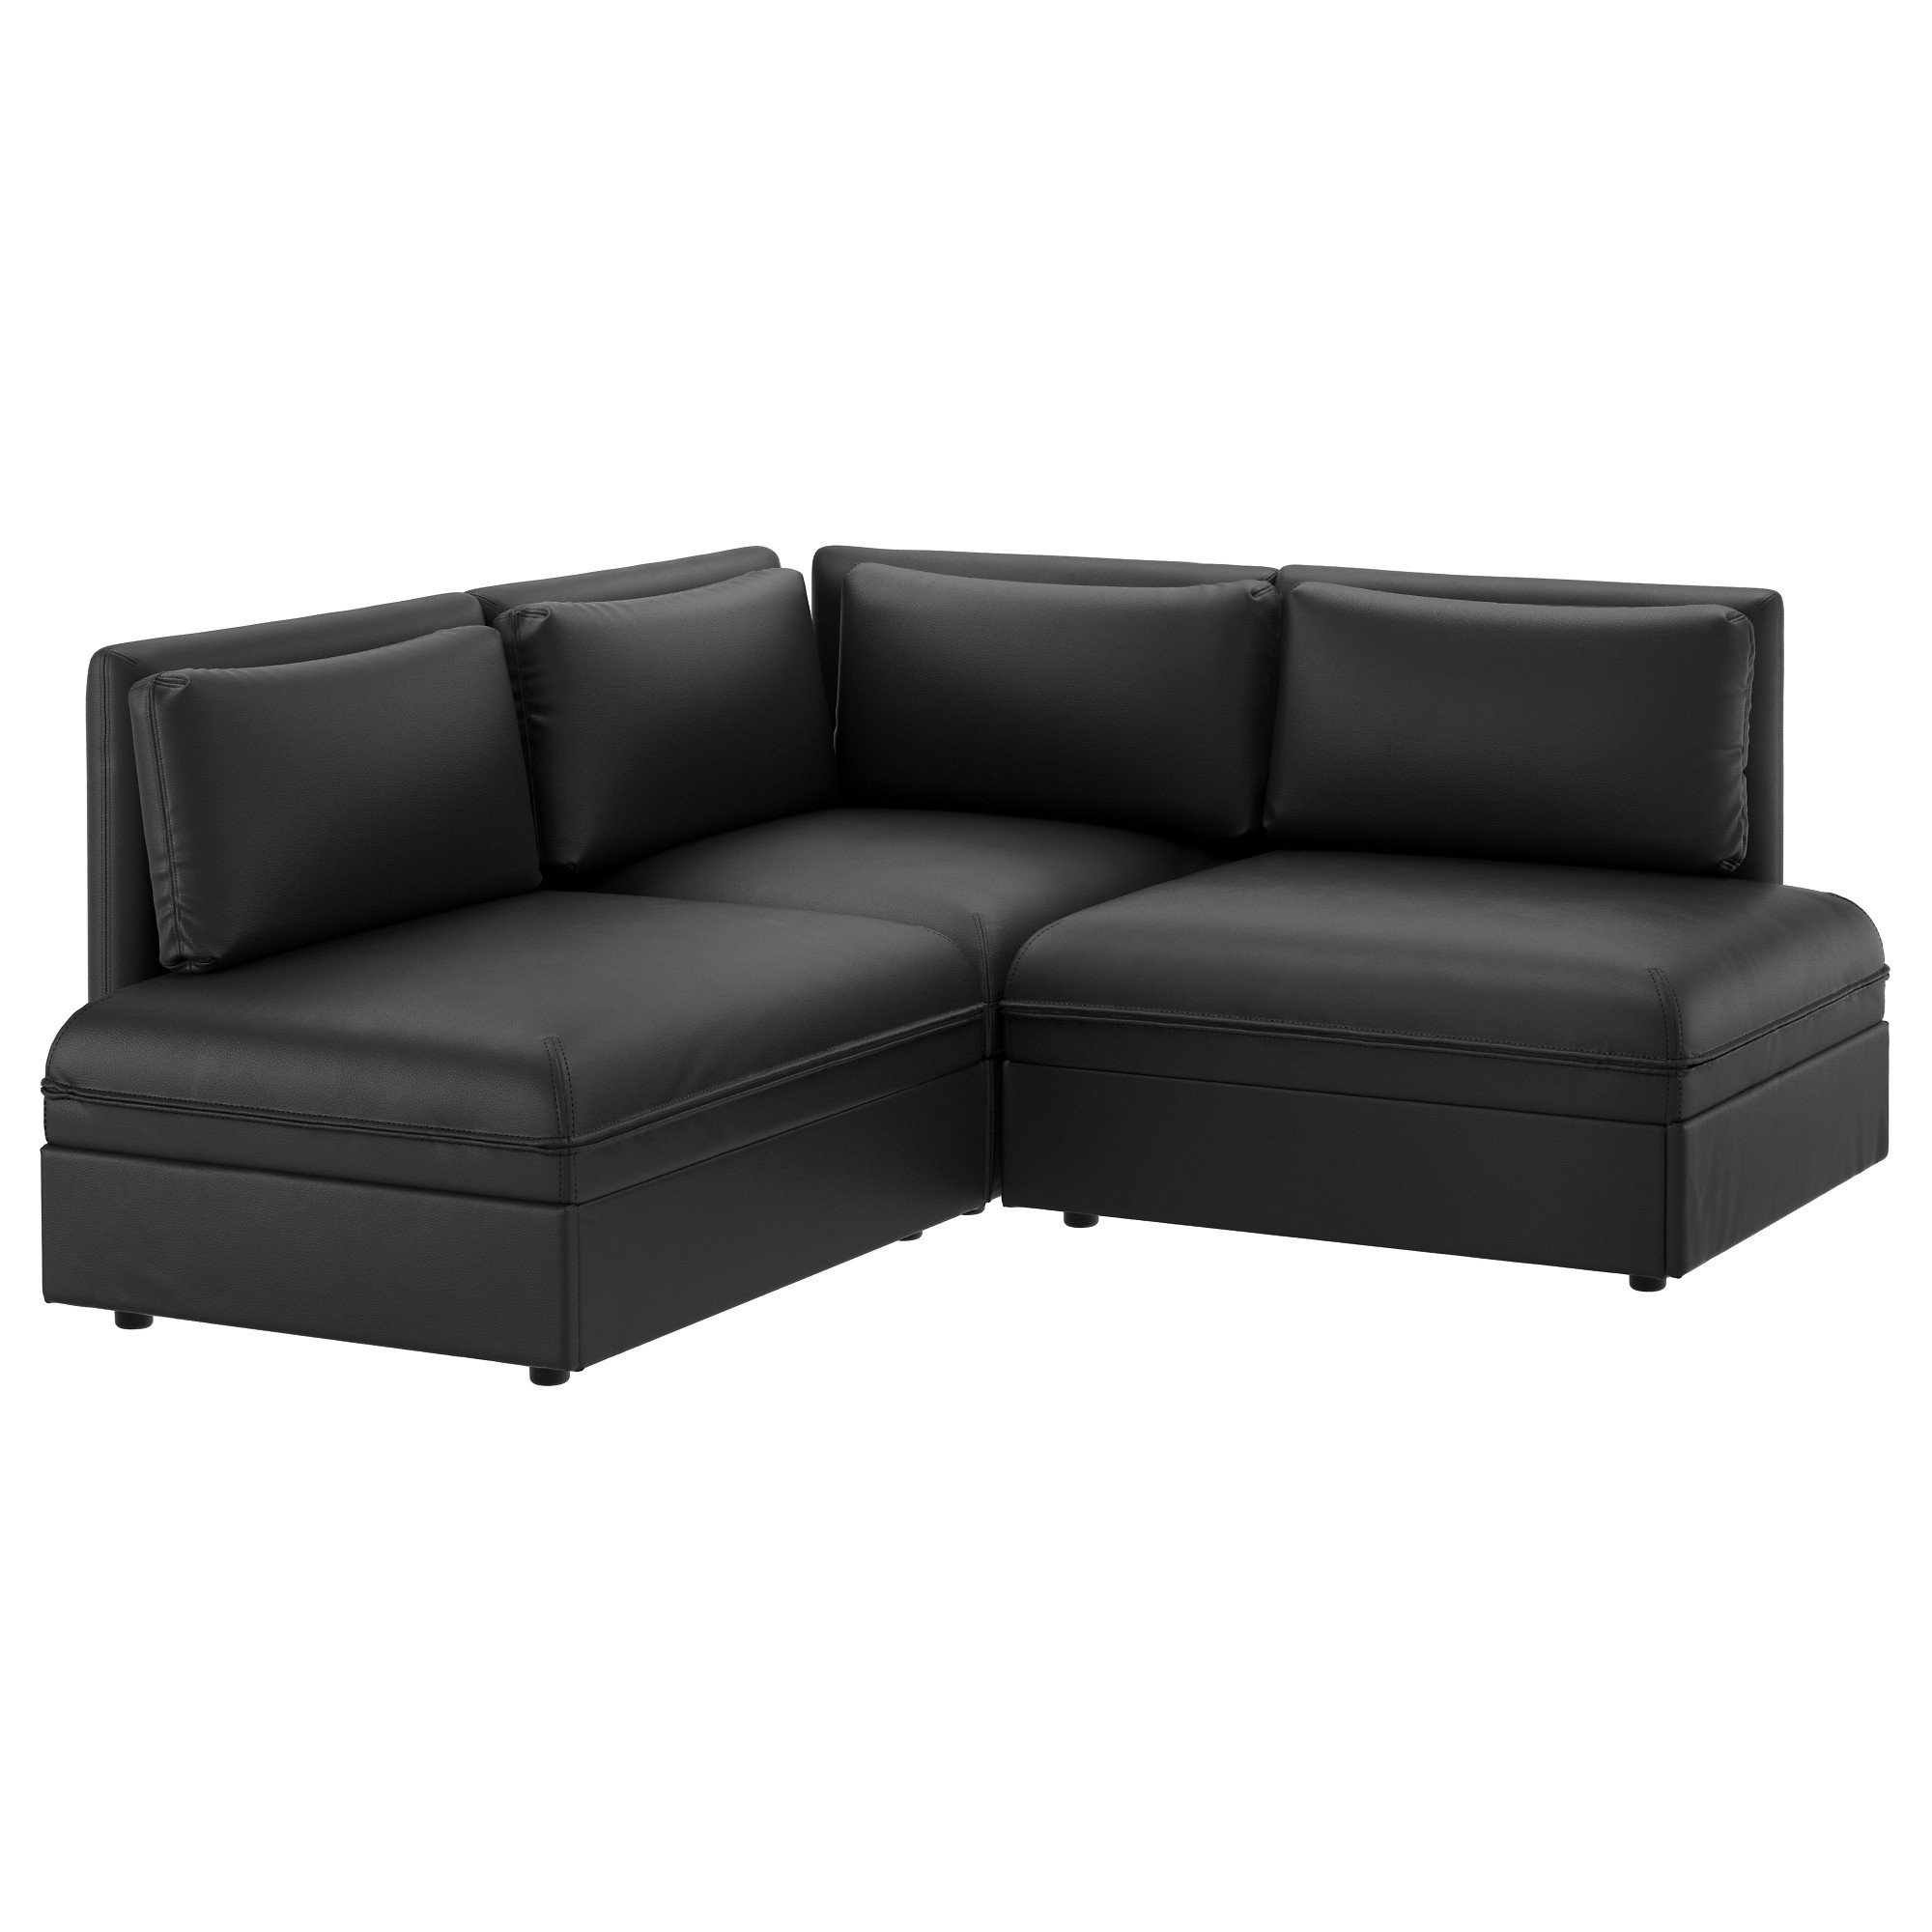 Sectional Sofas Couches Ikea Throughout Angled Sofa Sectional (Image 12 of 15)